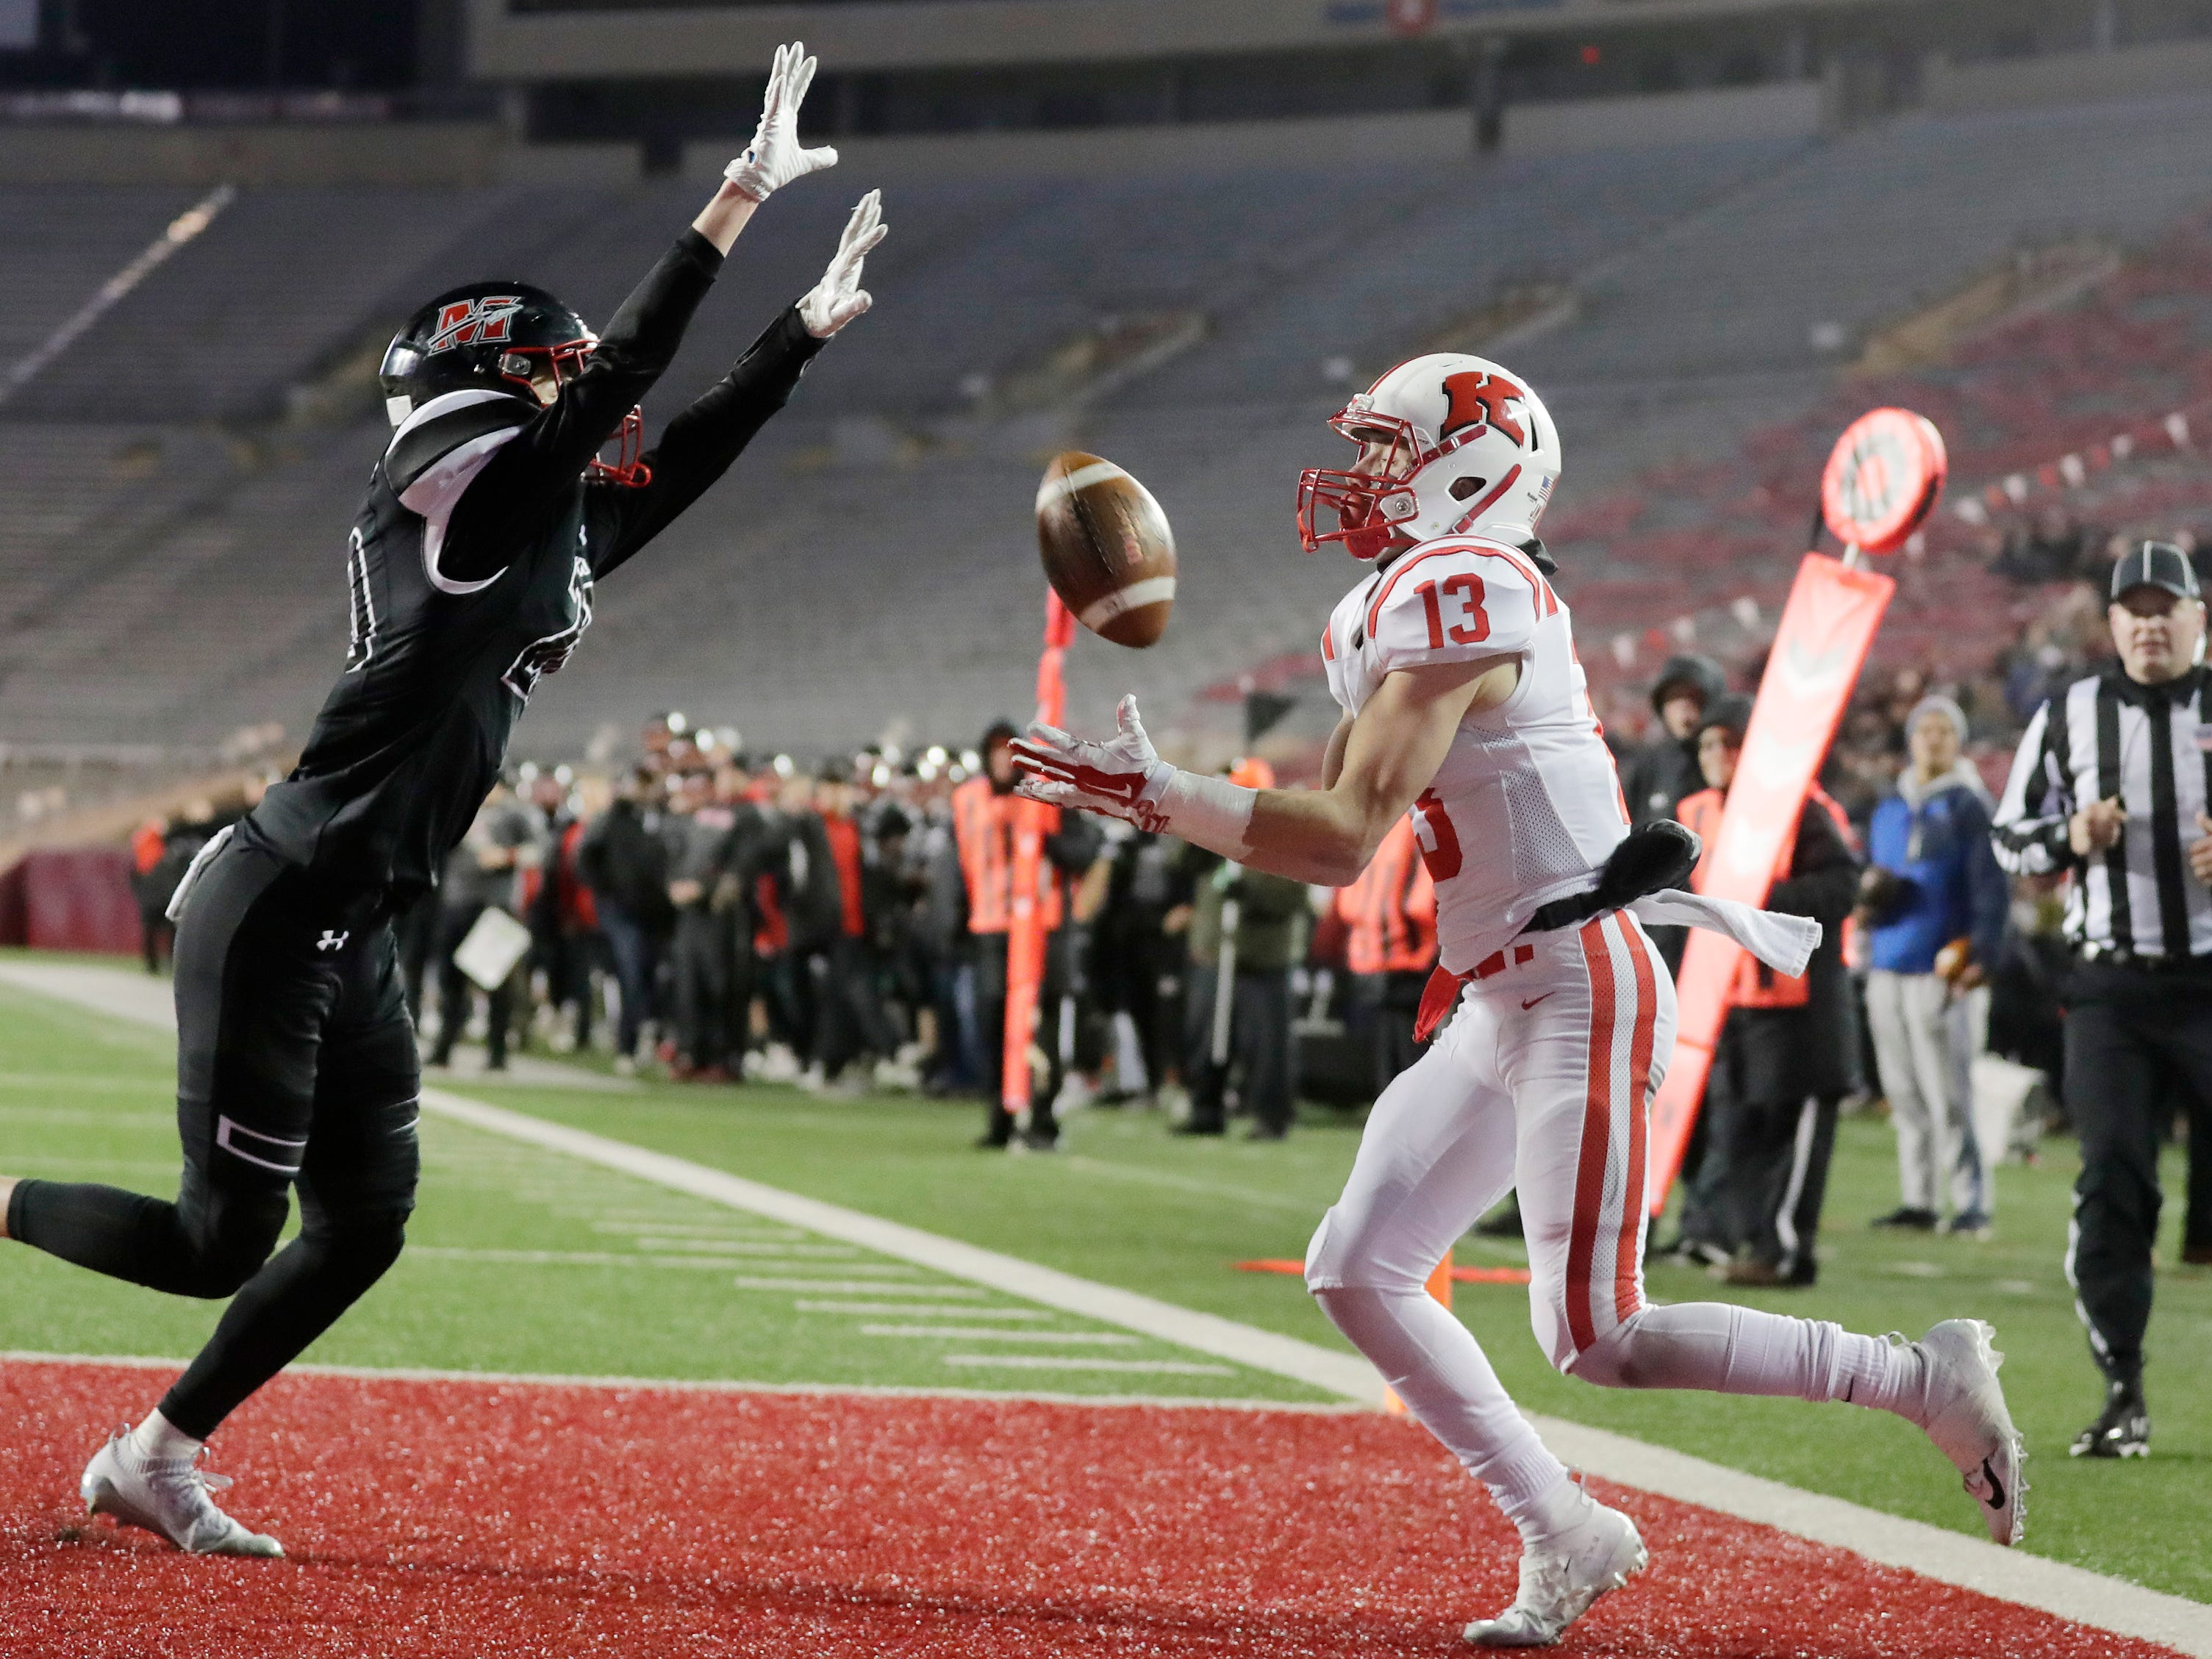 Kimberly's Zach Lechnir (13) bobbles a pass in the end zone at the end of the first half against Muskego in the WIAA Division 1 championship game at Camp Randall Stadium on Friday, November 16, 2018 in Madison, Wis.